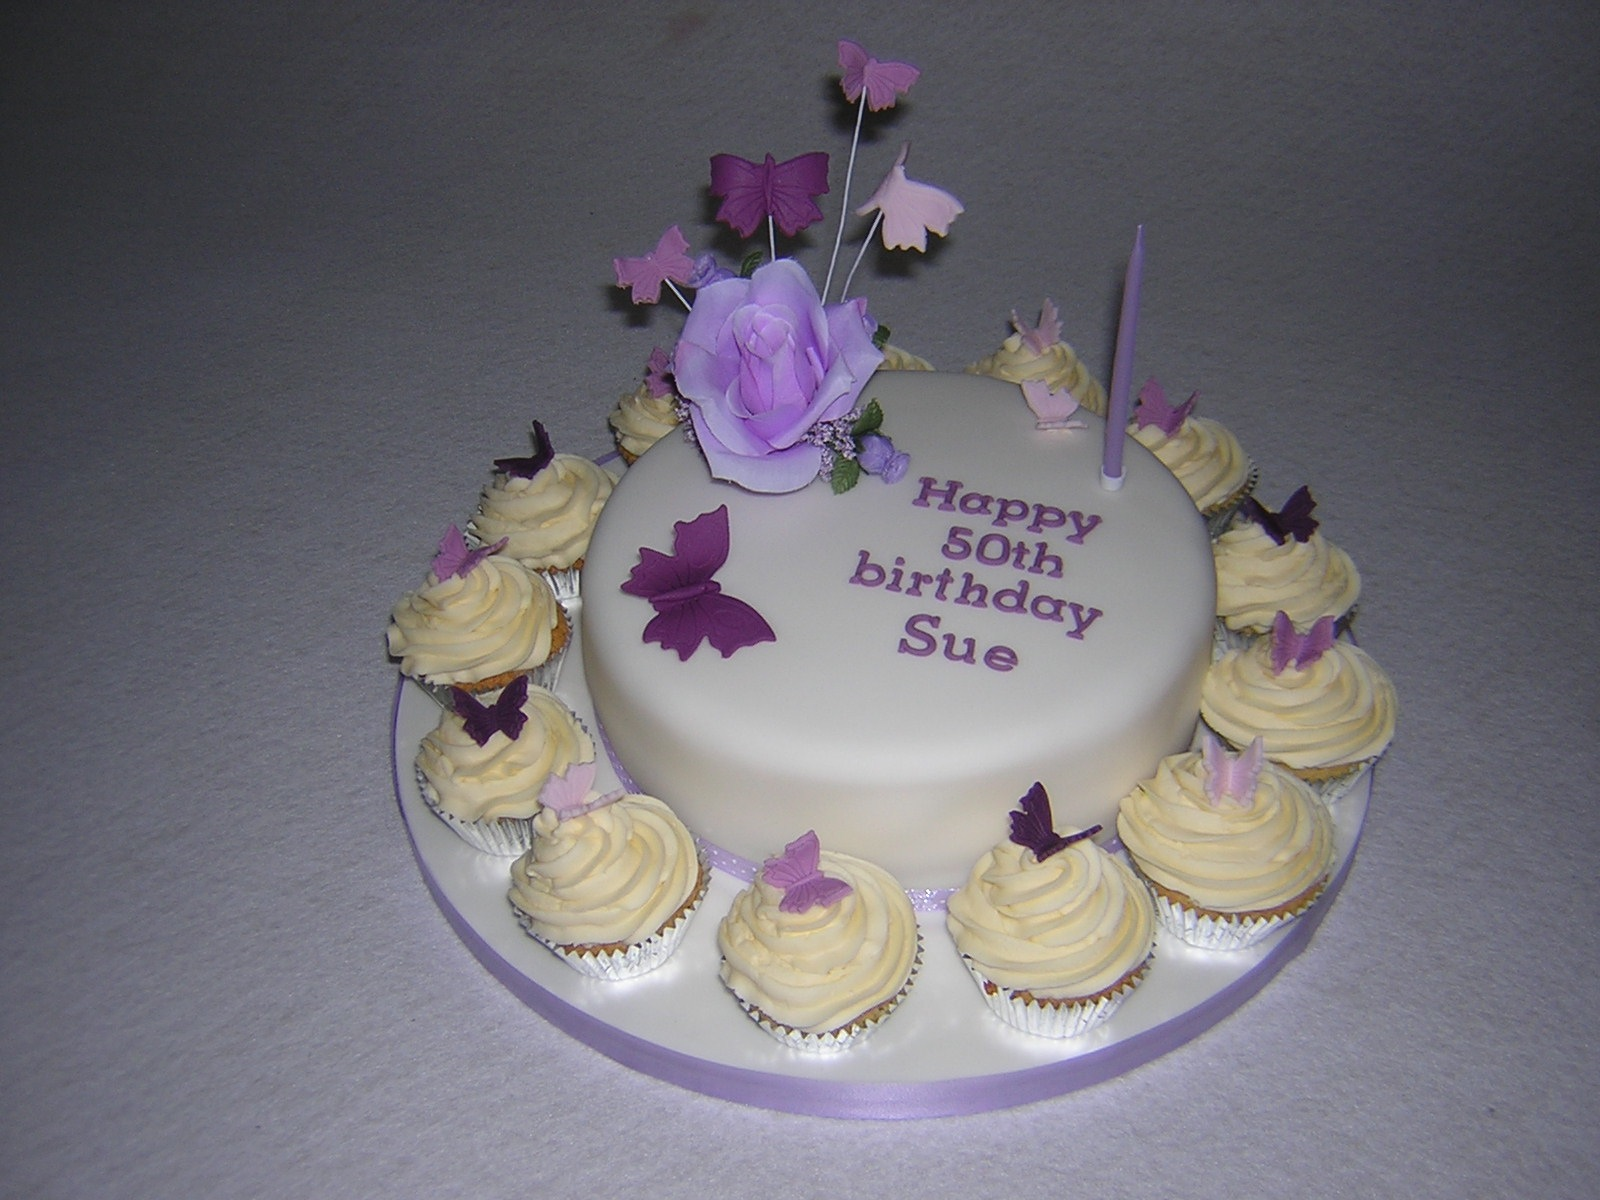 Birthday Cake Ideas With Cupcakes : Cupcake Cakes - Julie s Creative CakesJulie s Creative Cakes